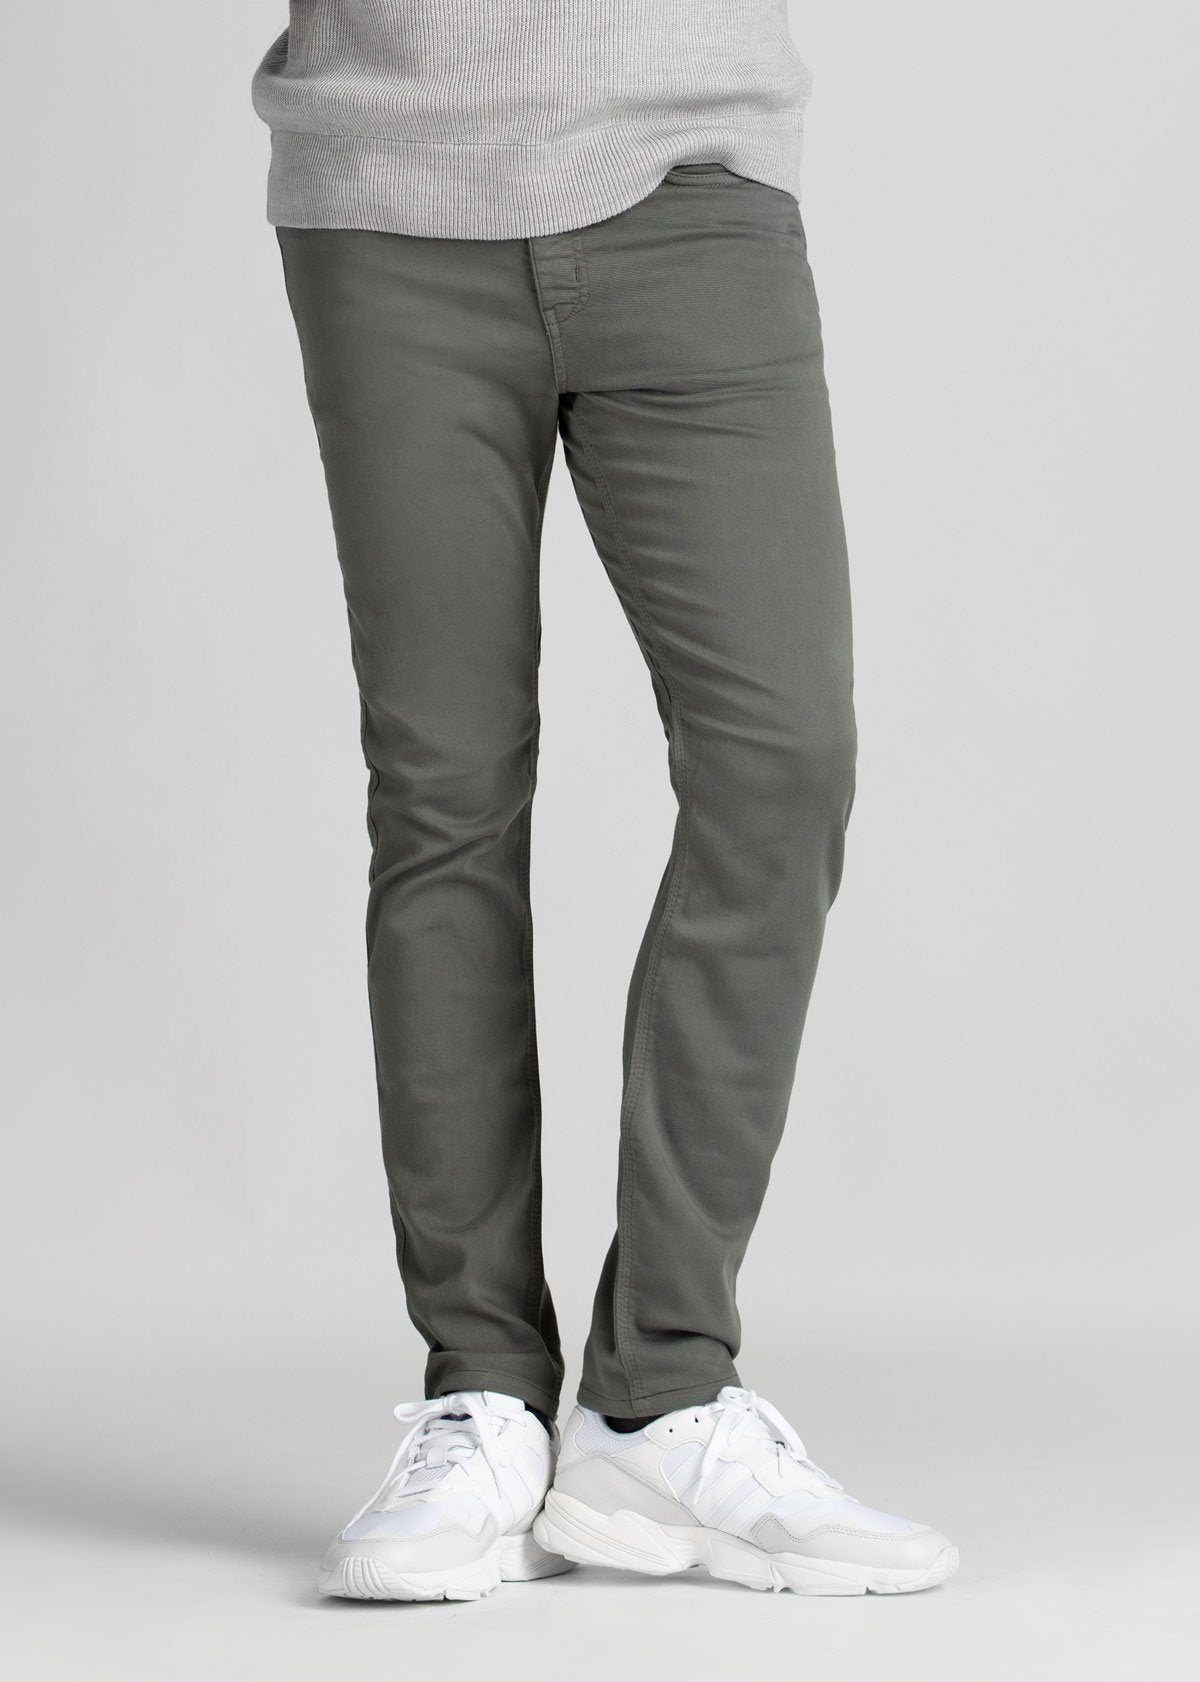 No Sweat Pant - Slim